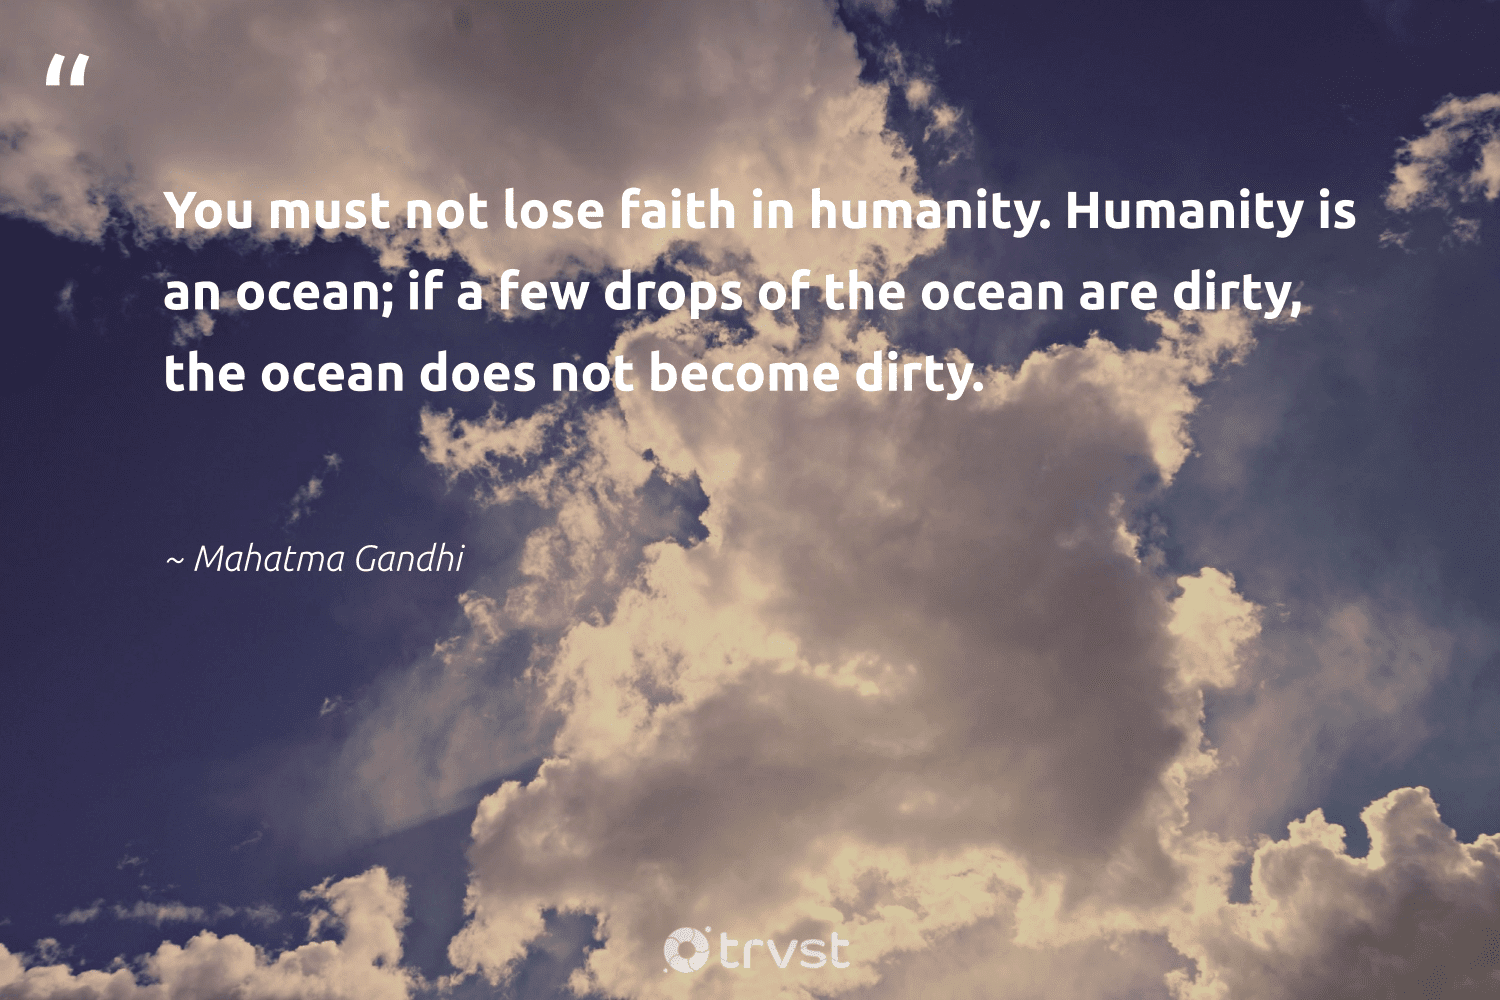 """""""You must not lose faith in humanity. Humanity is an ocean; if a few drops of the ocean are dirty, the ocean does not become dirty.""""  - Mahatma Gandhi #trvst #quotes #ocean #river #society #wildlifeplanet #dogood #oceanpollution #socialchange #environmentallyfriendly #beinspired #water"""